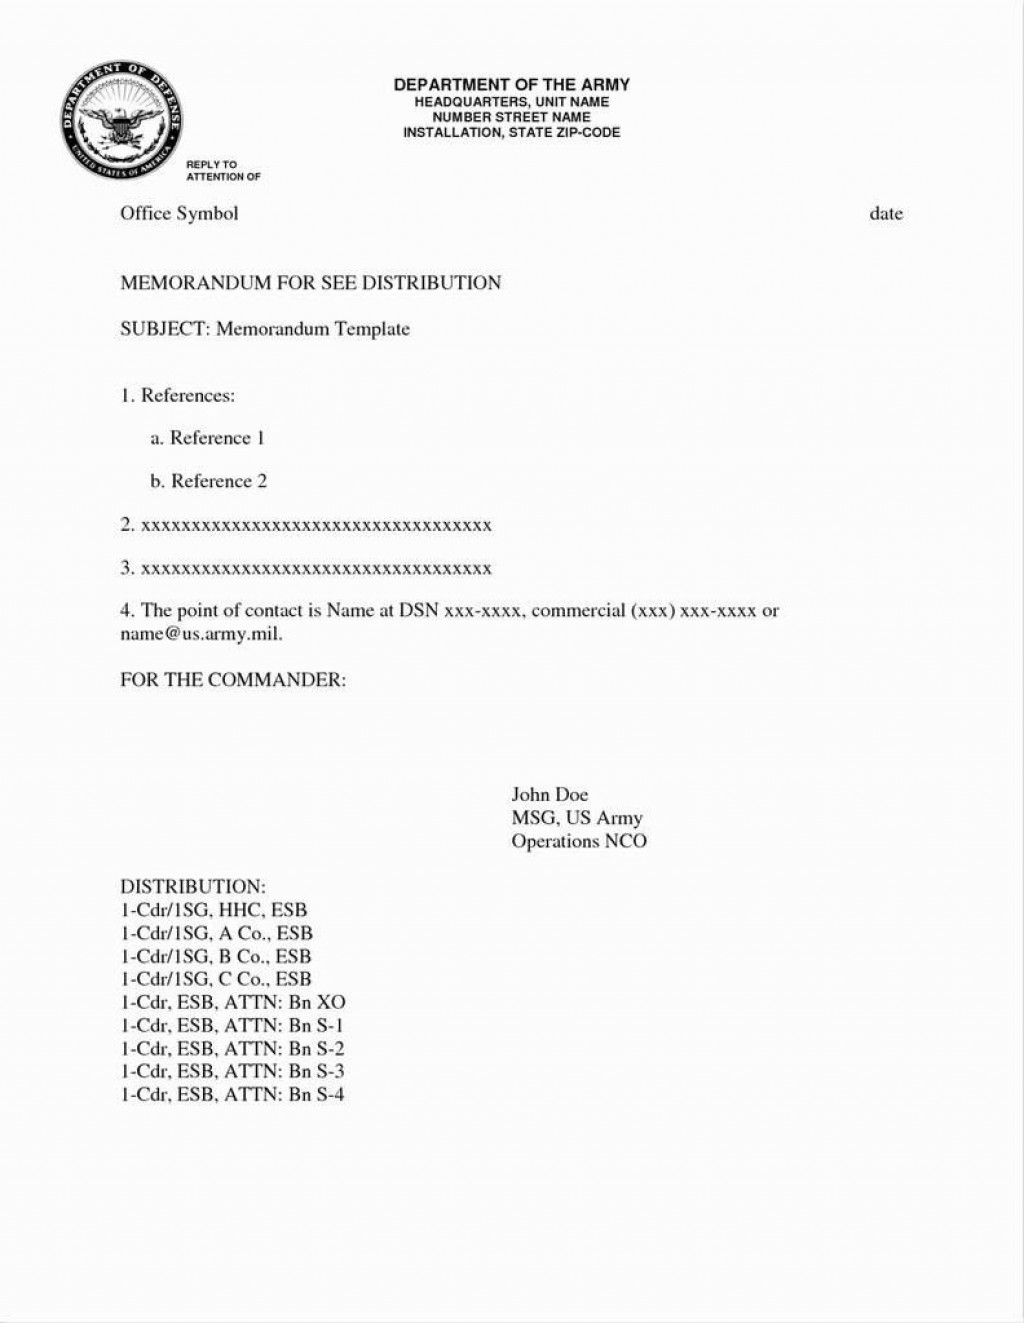 004 Excellent Memorandum For Record Template High Definition  Army Pdf Fillable Example WlcLarge